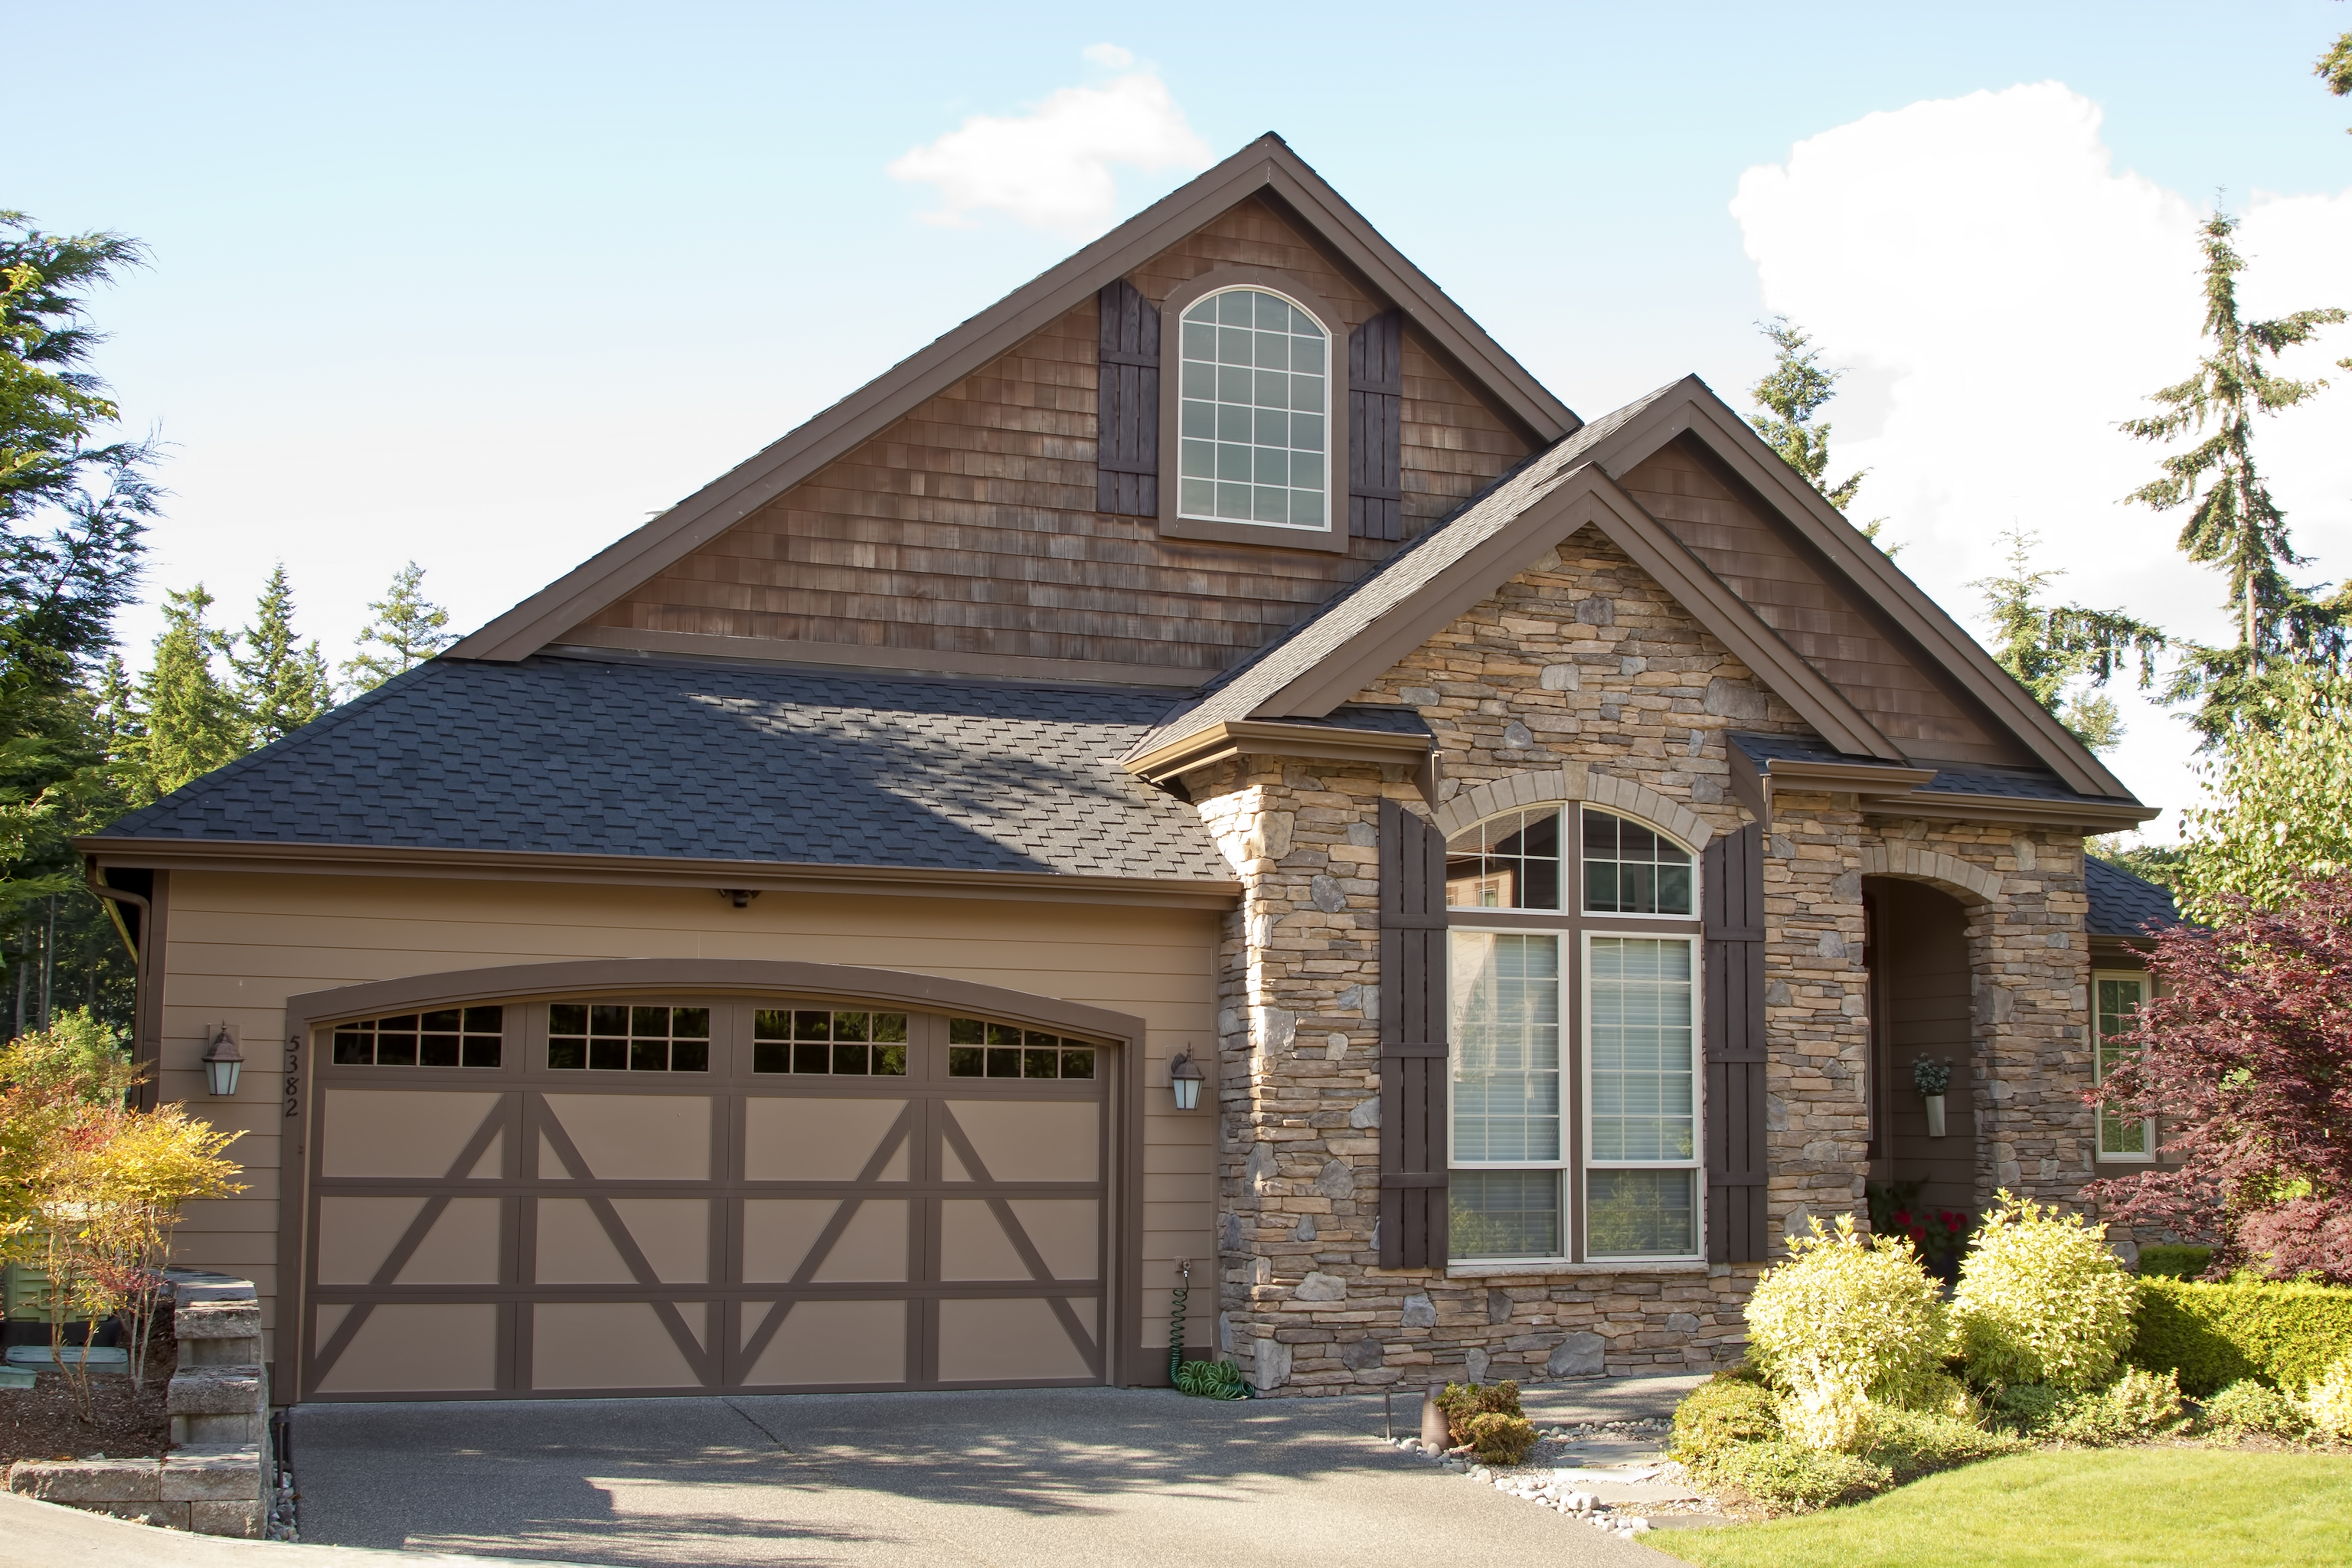 ... A Steel Garage Door In Your Desired Style, From Flush Panels To Elegant  Windows To Doors That Look Like Wood. Call Us Today To Inquire About  Getting A ...